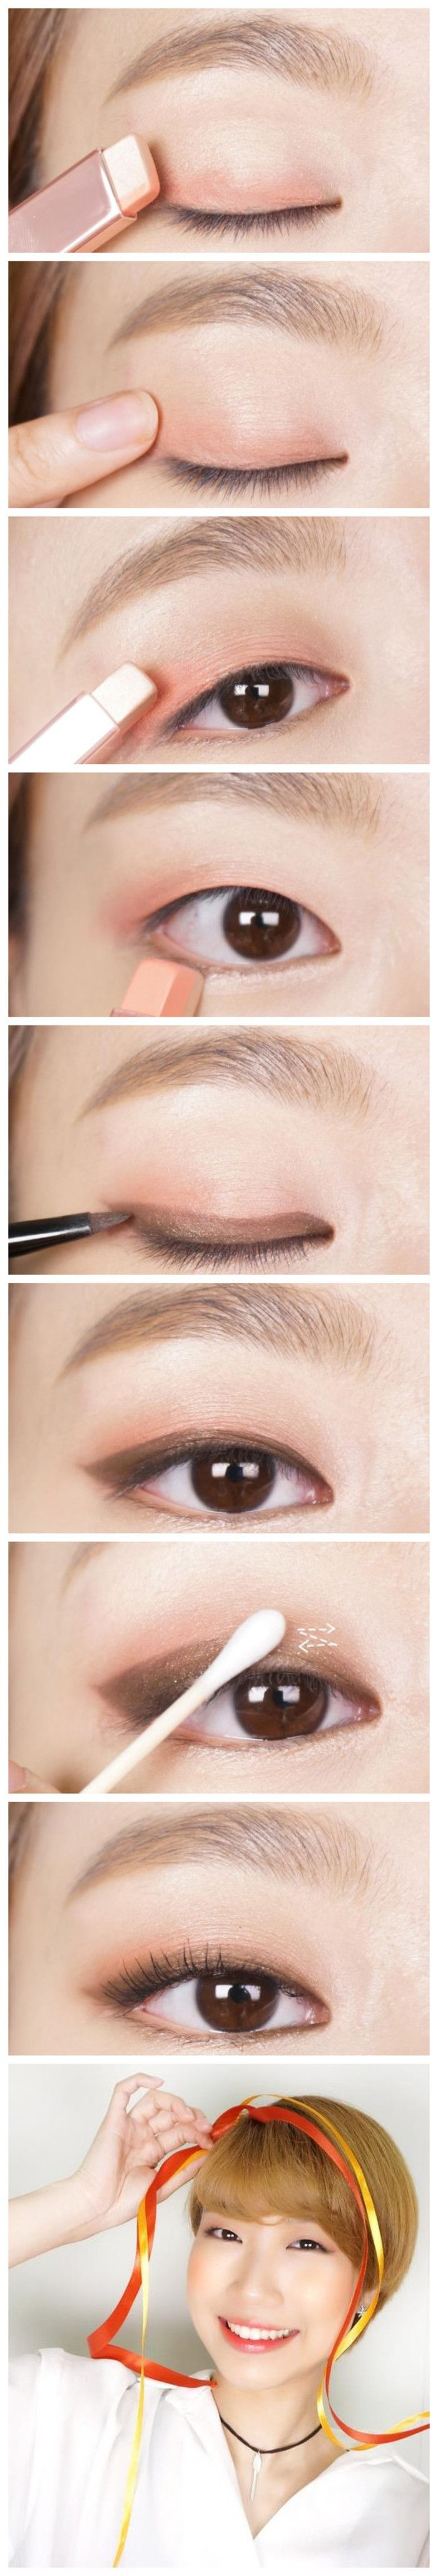 Single eyelid make up #eye make up #idea